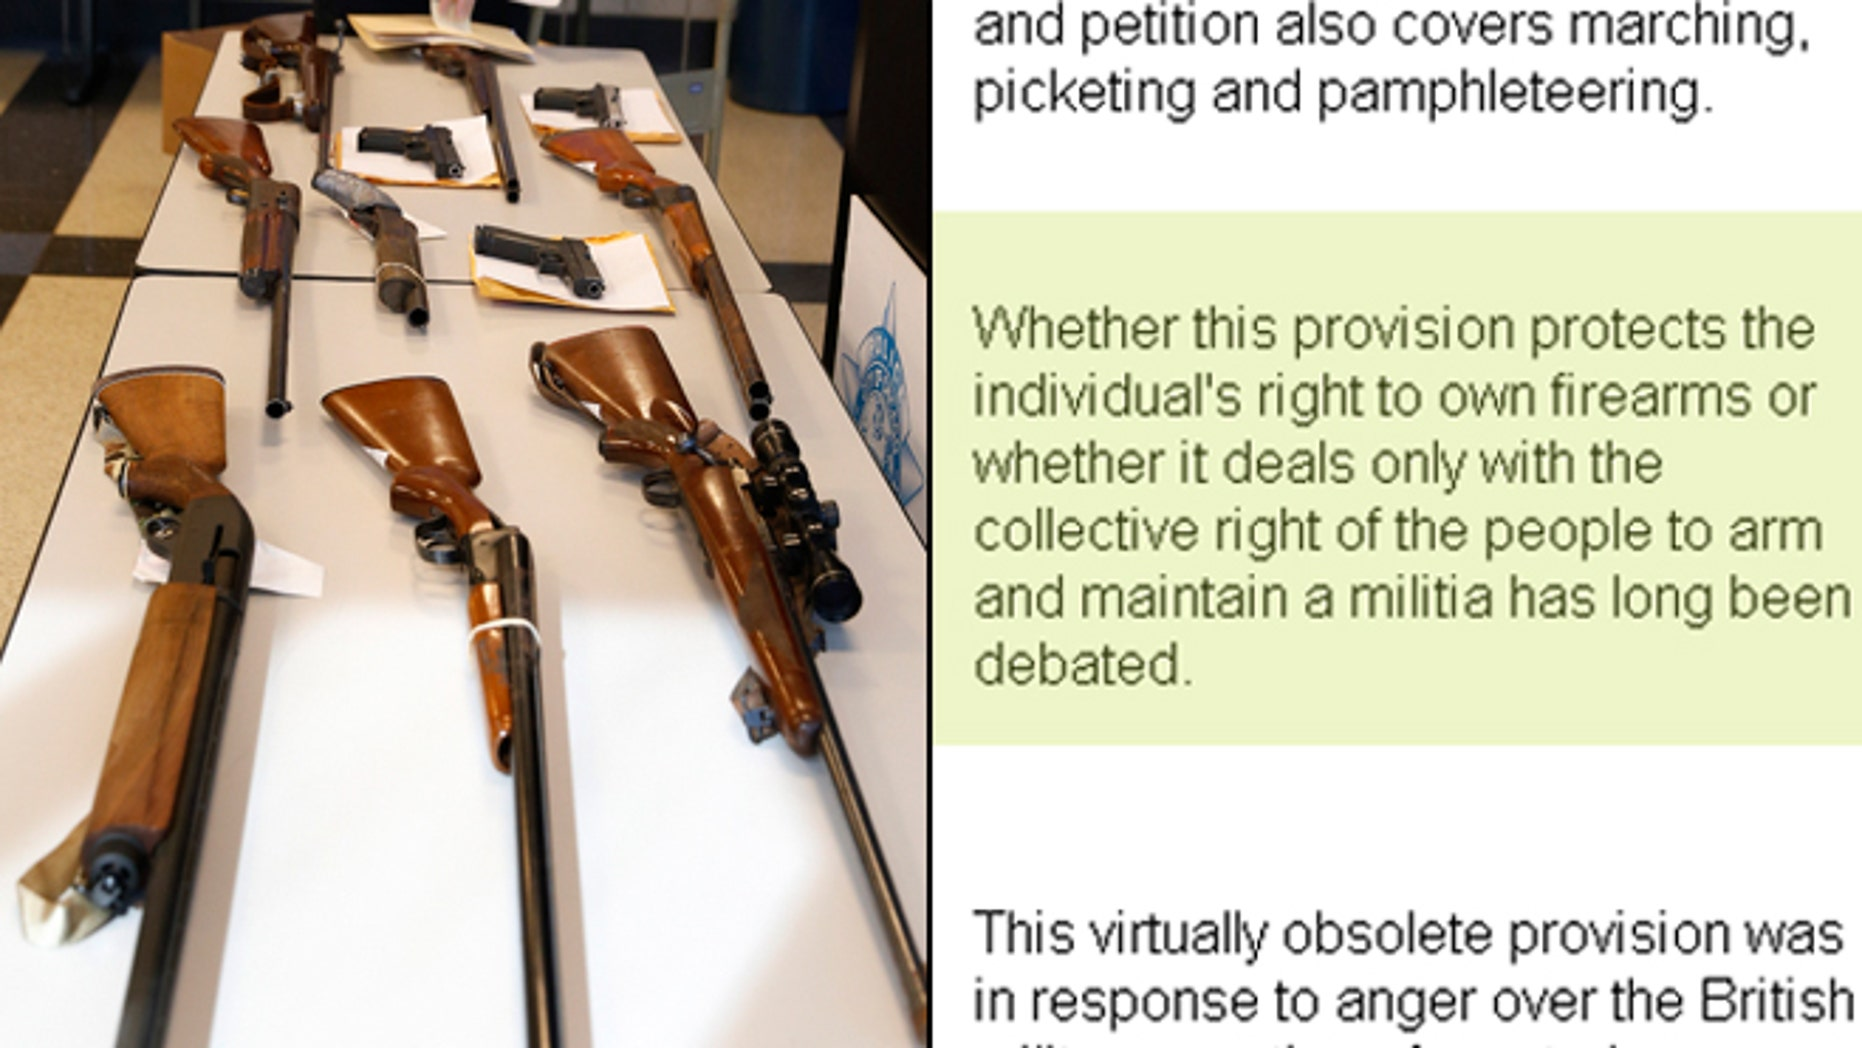 Shown, at right, is a screen shot of the Senate web entry on the 2nd Amendment. The controversial passage is highlighted.